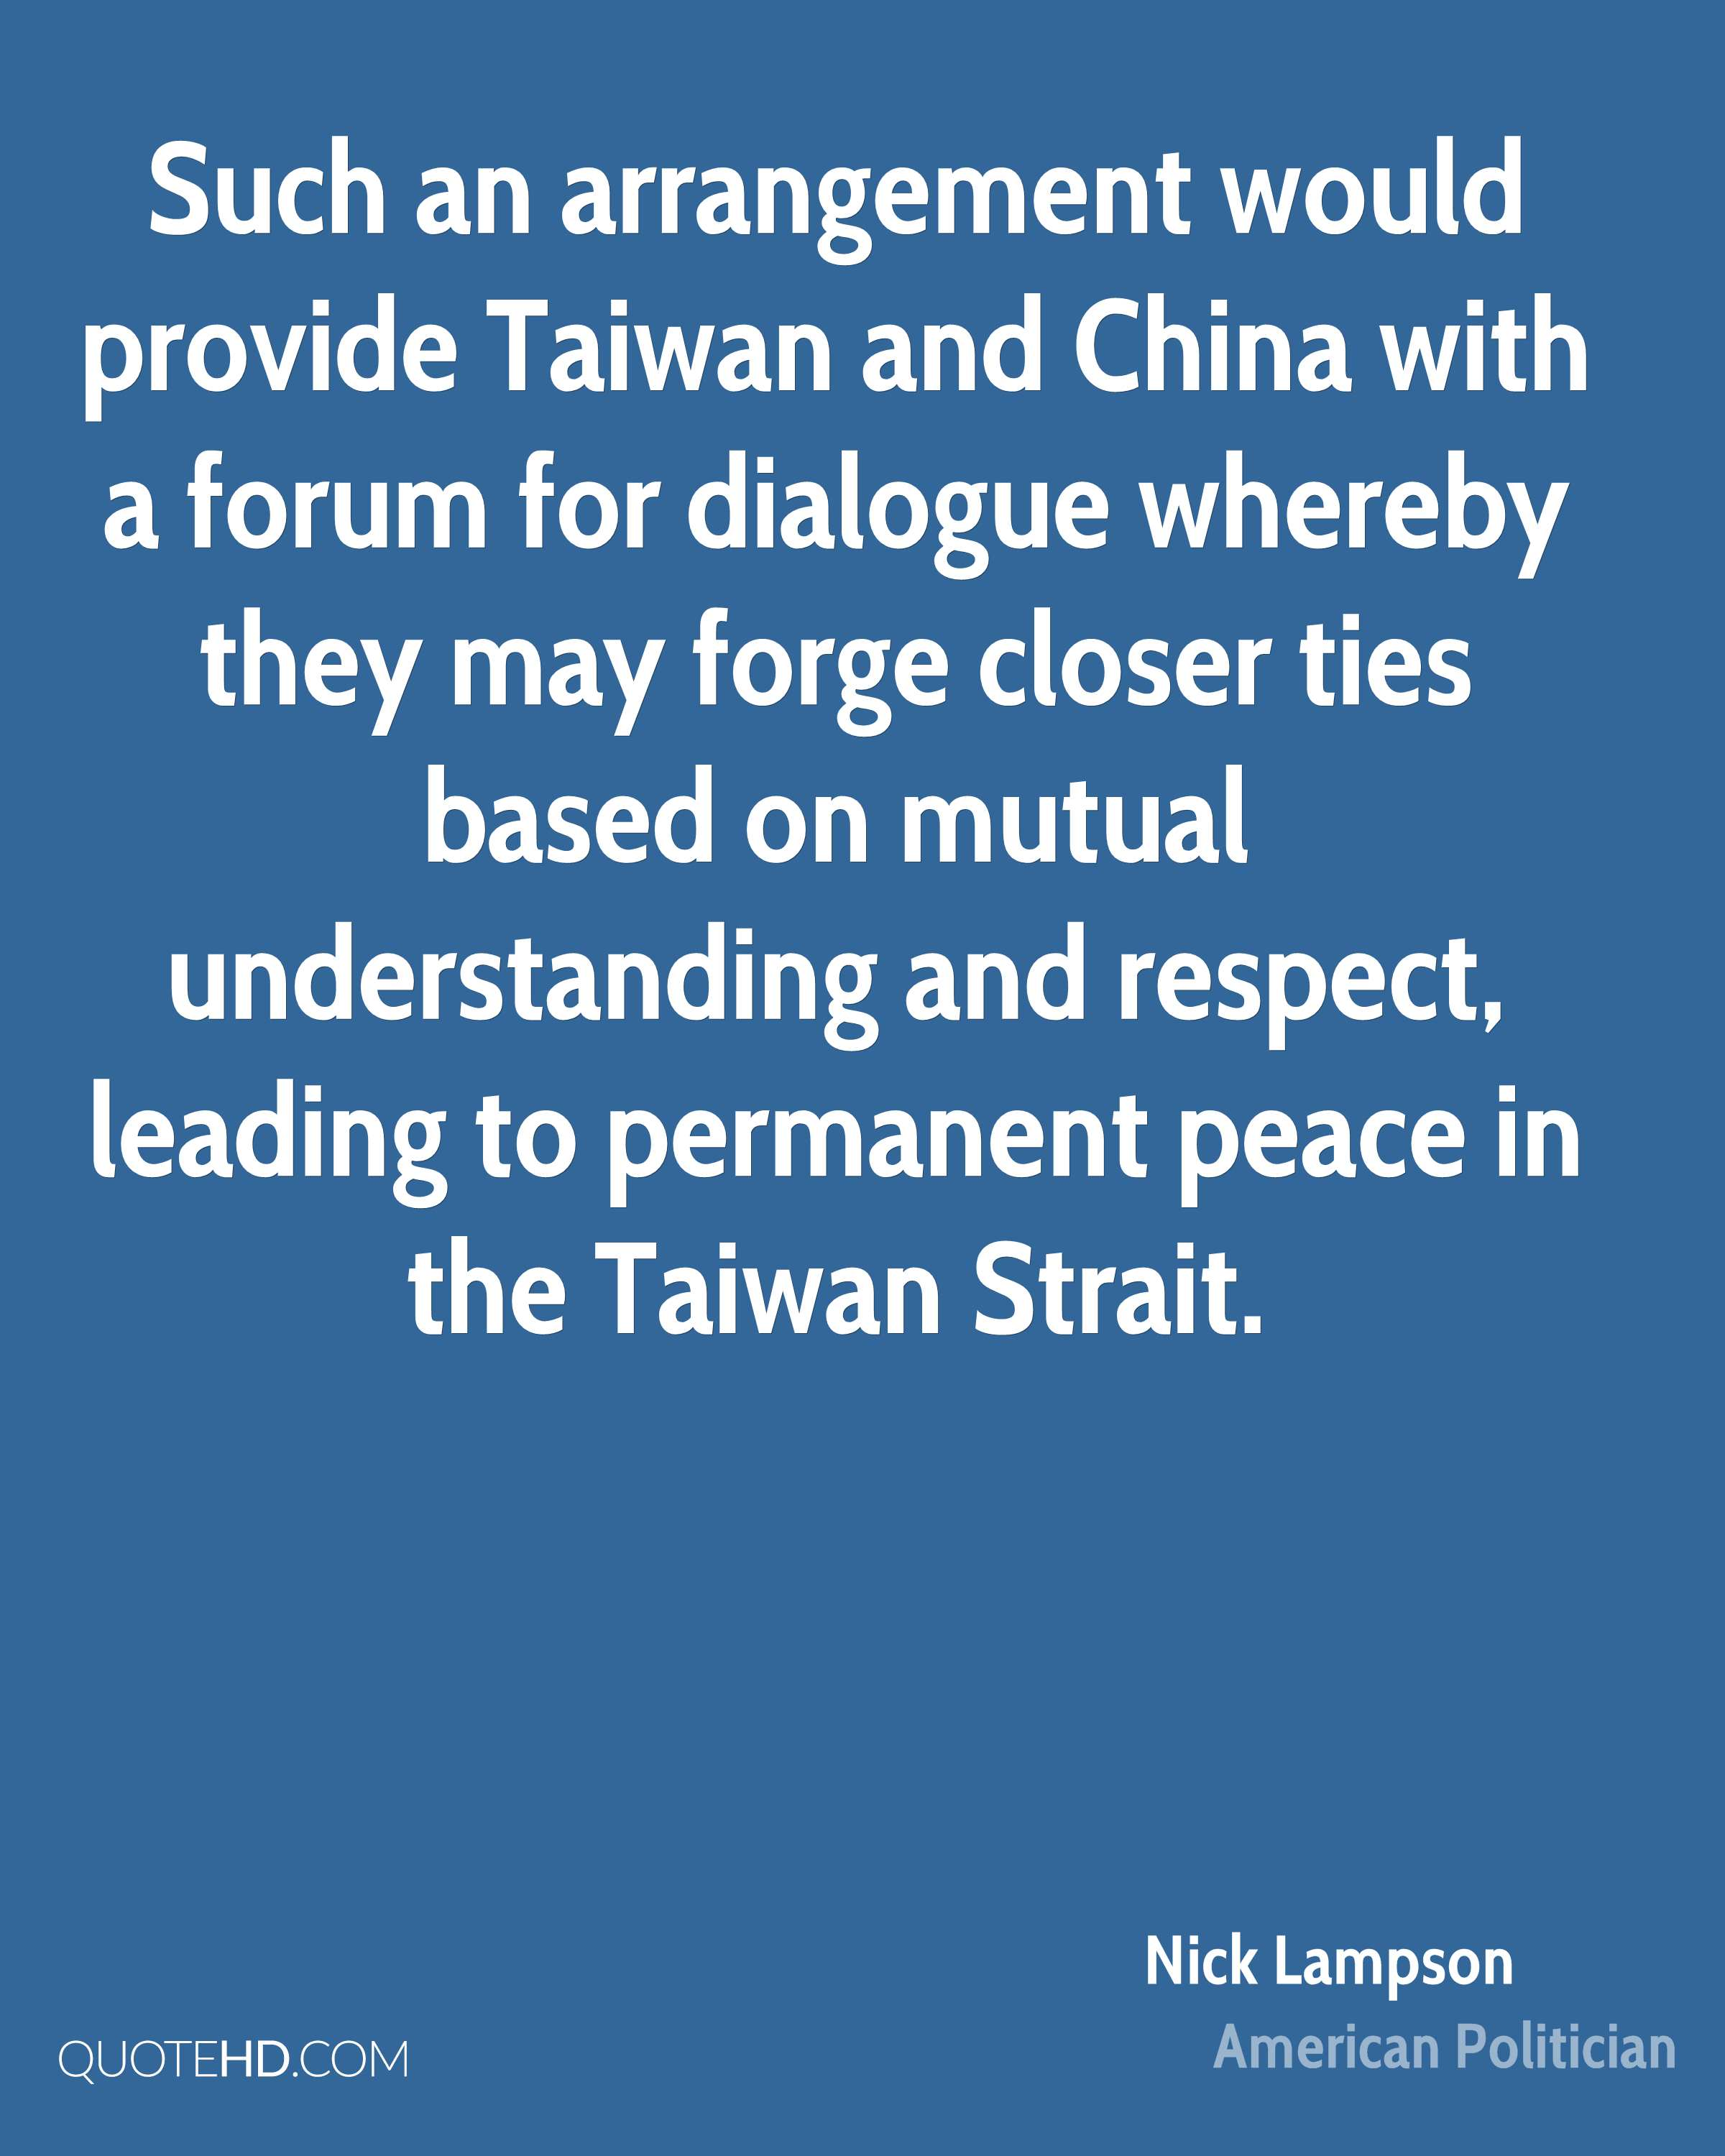 Such an arrangement would provide Taiwan and China with a forum for dialogue whereby they may forge closer ties based on mutual understanding and respect, leading to permanent peace in the Taiwan Strait.